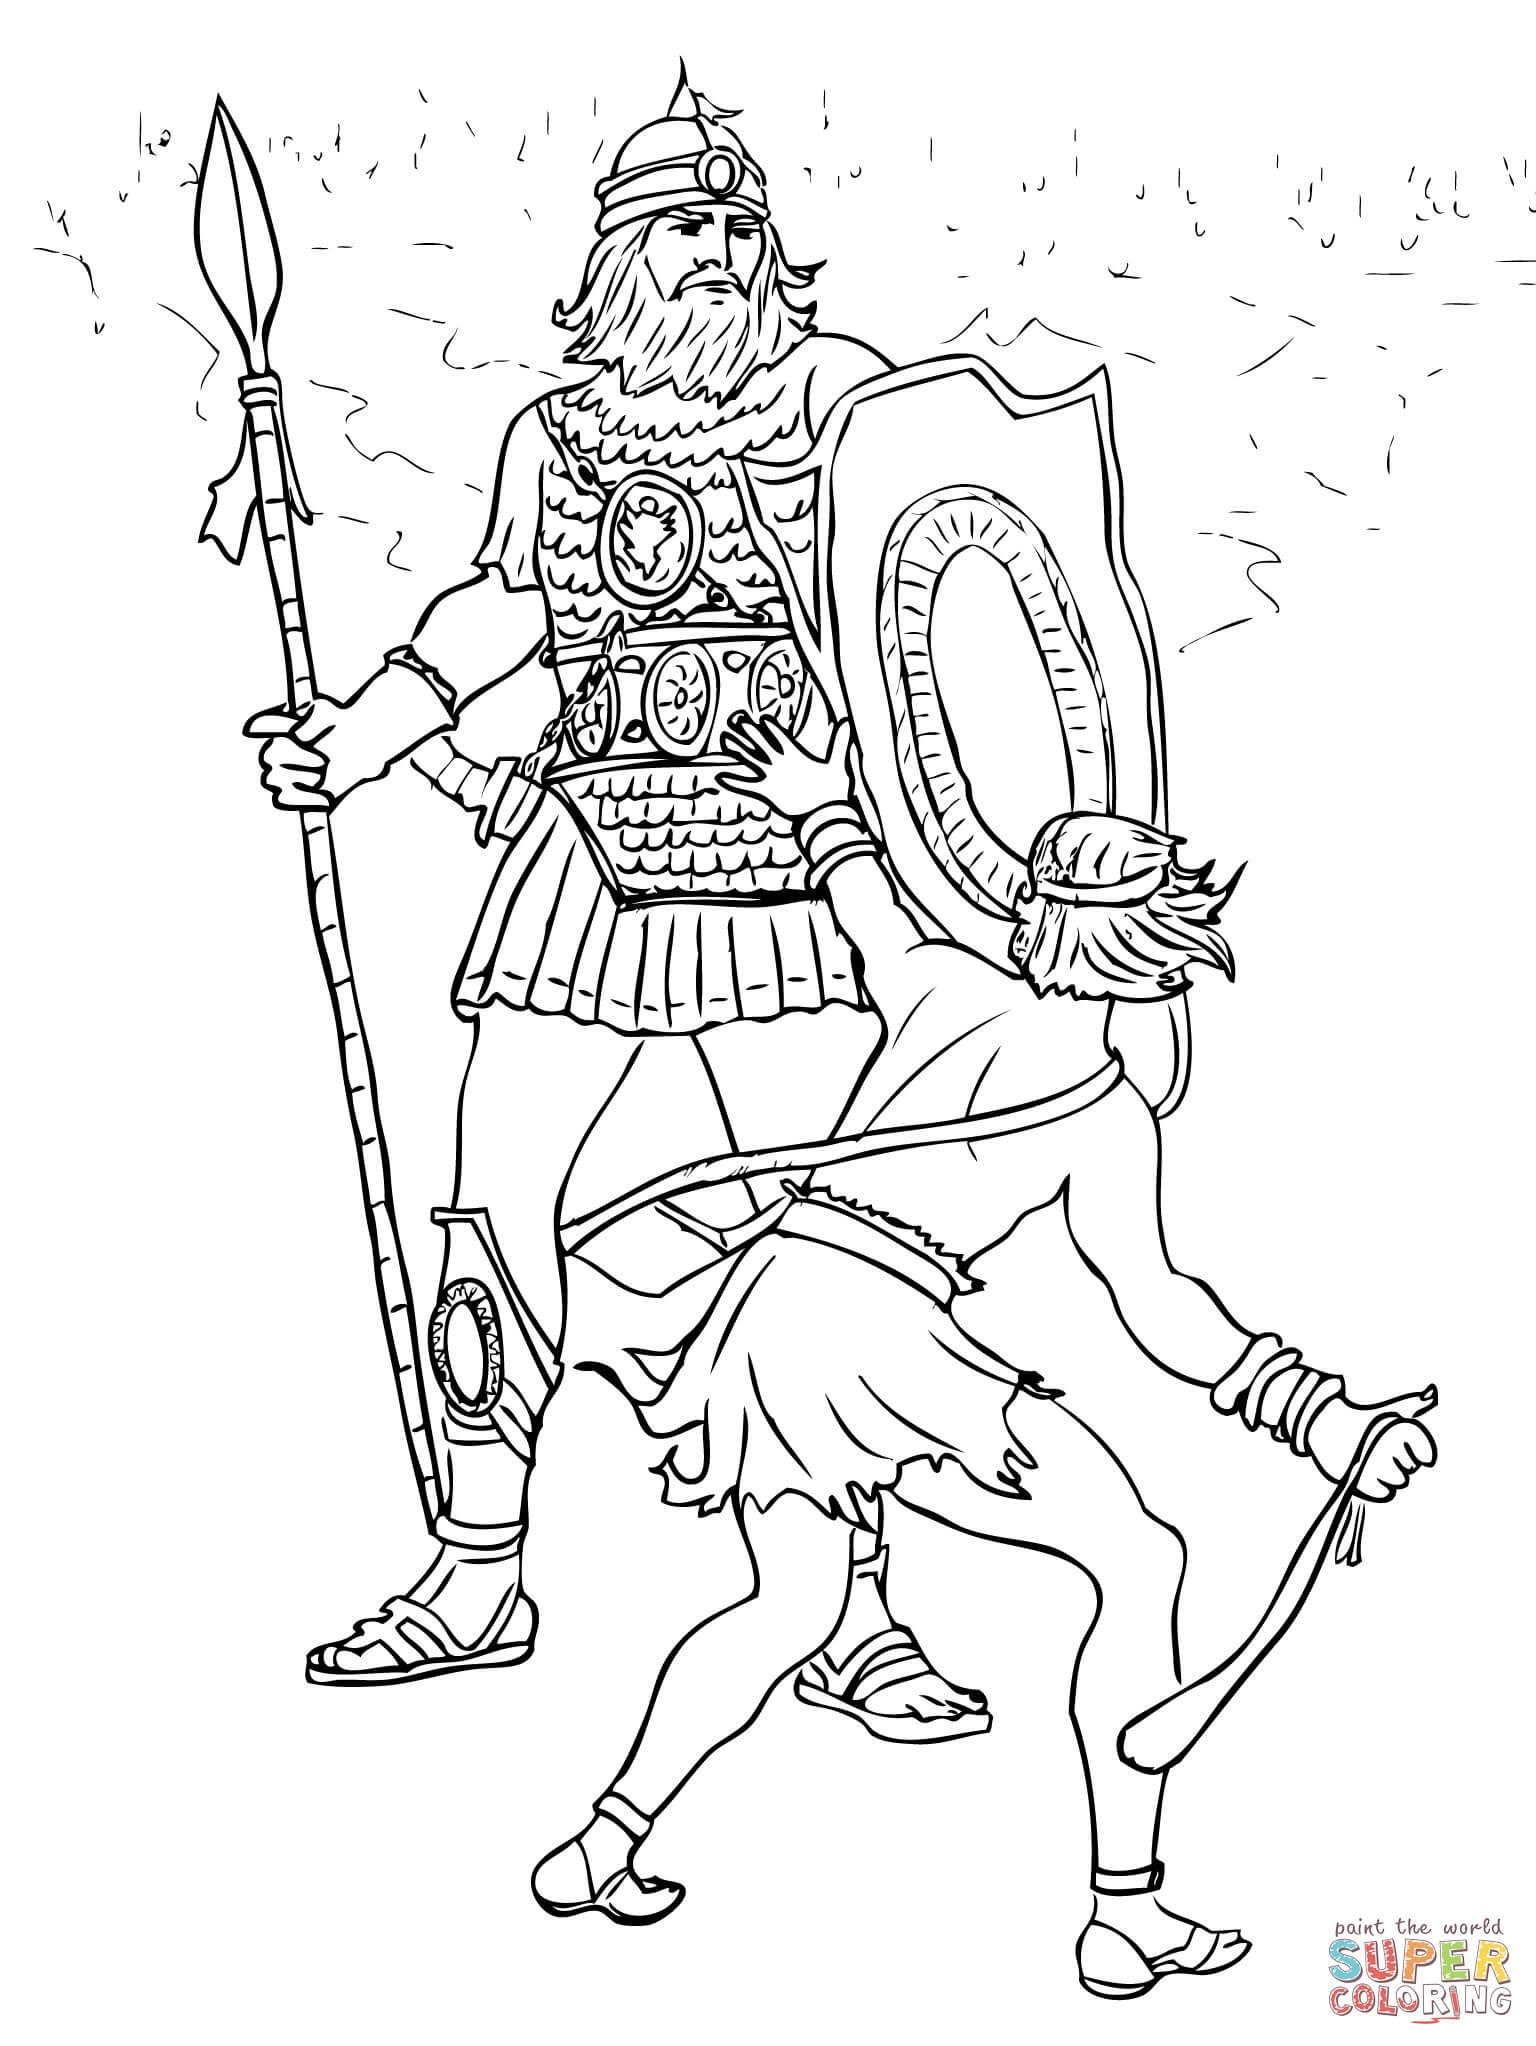 David and Goliath Fight coloring page.